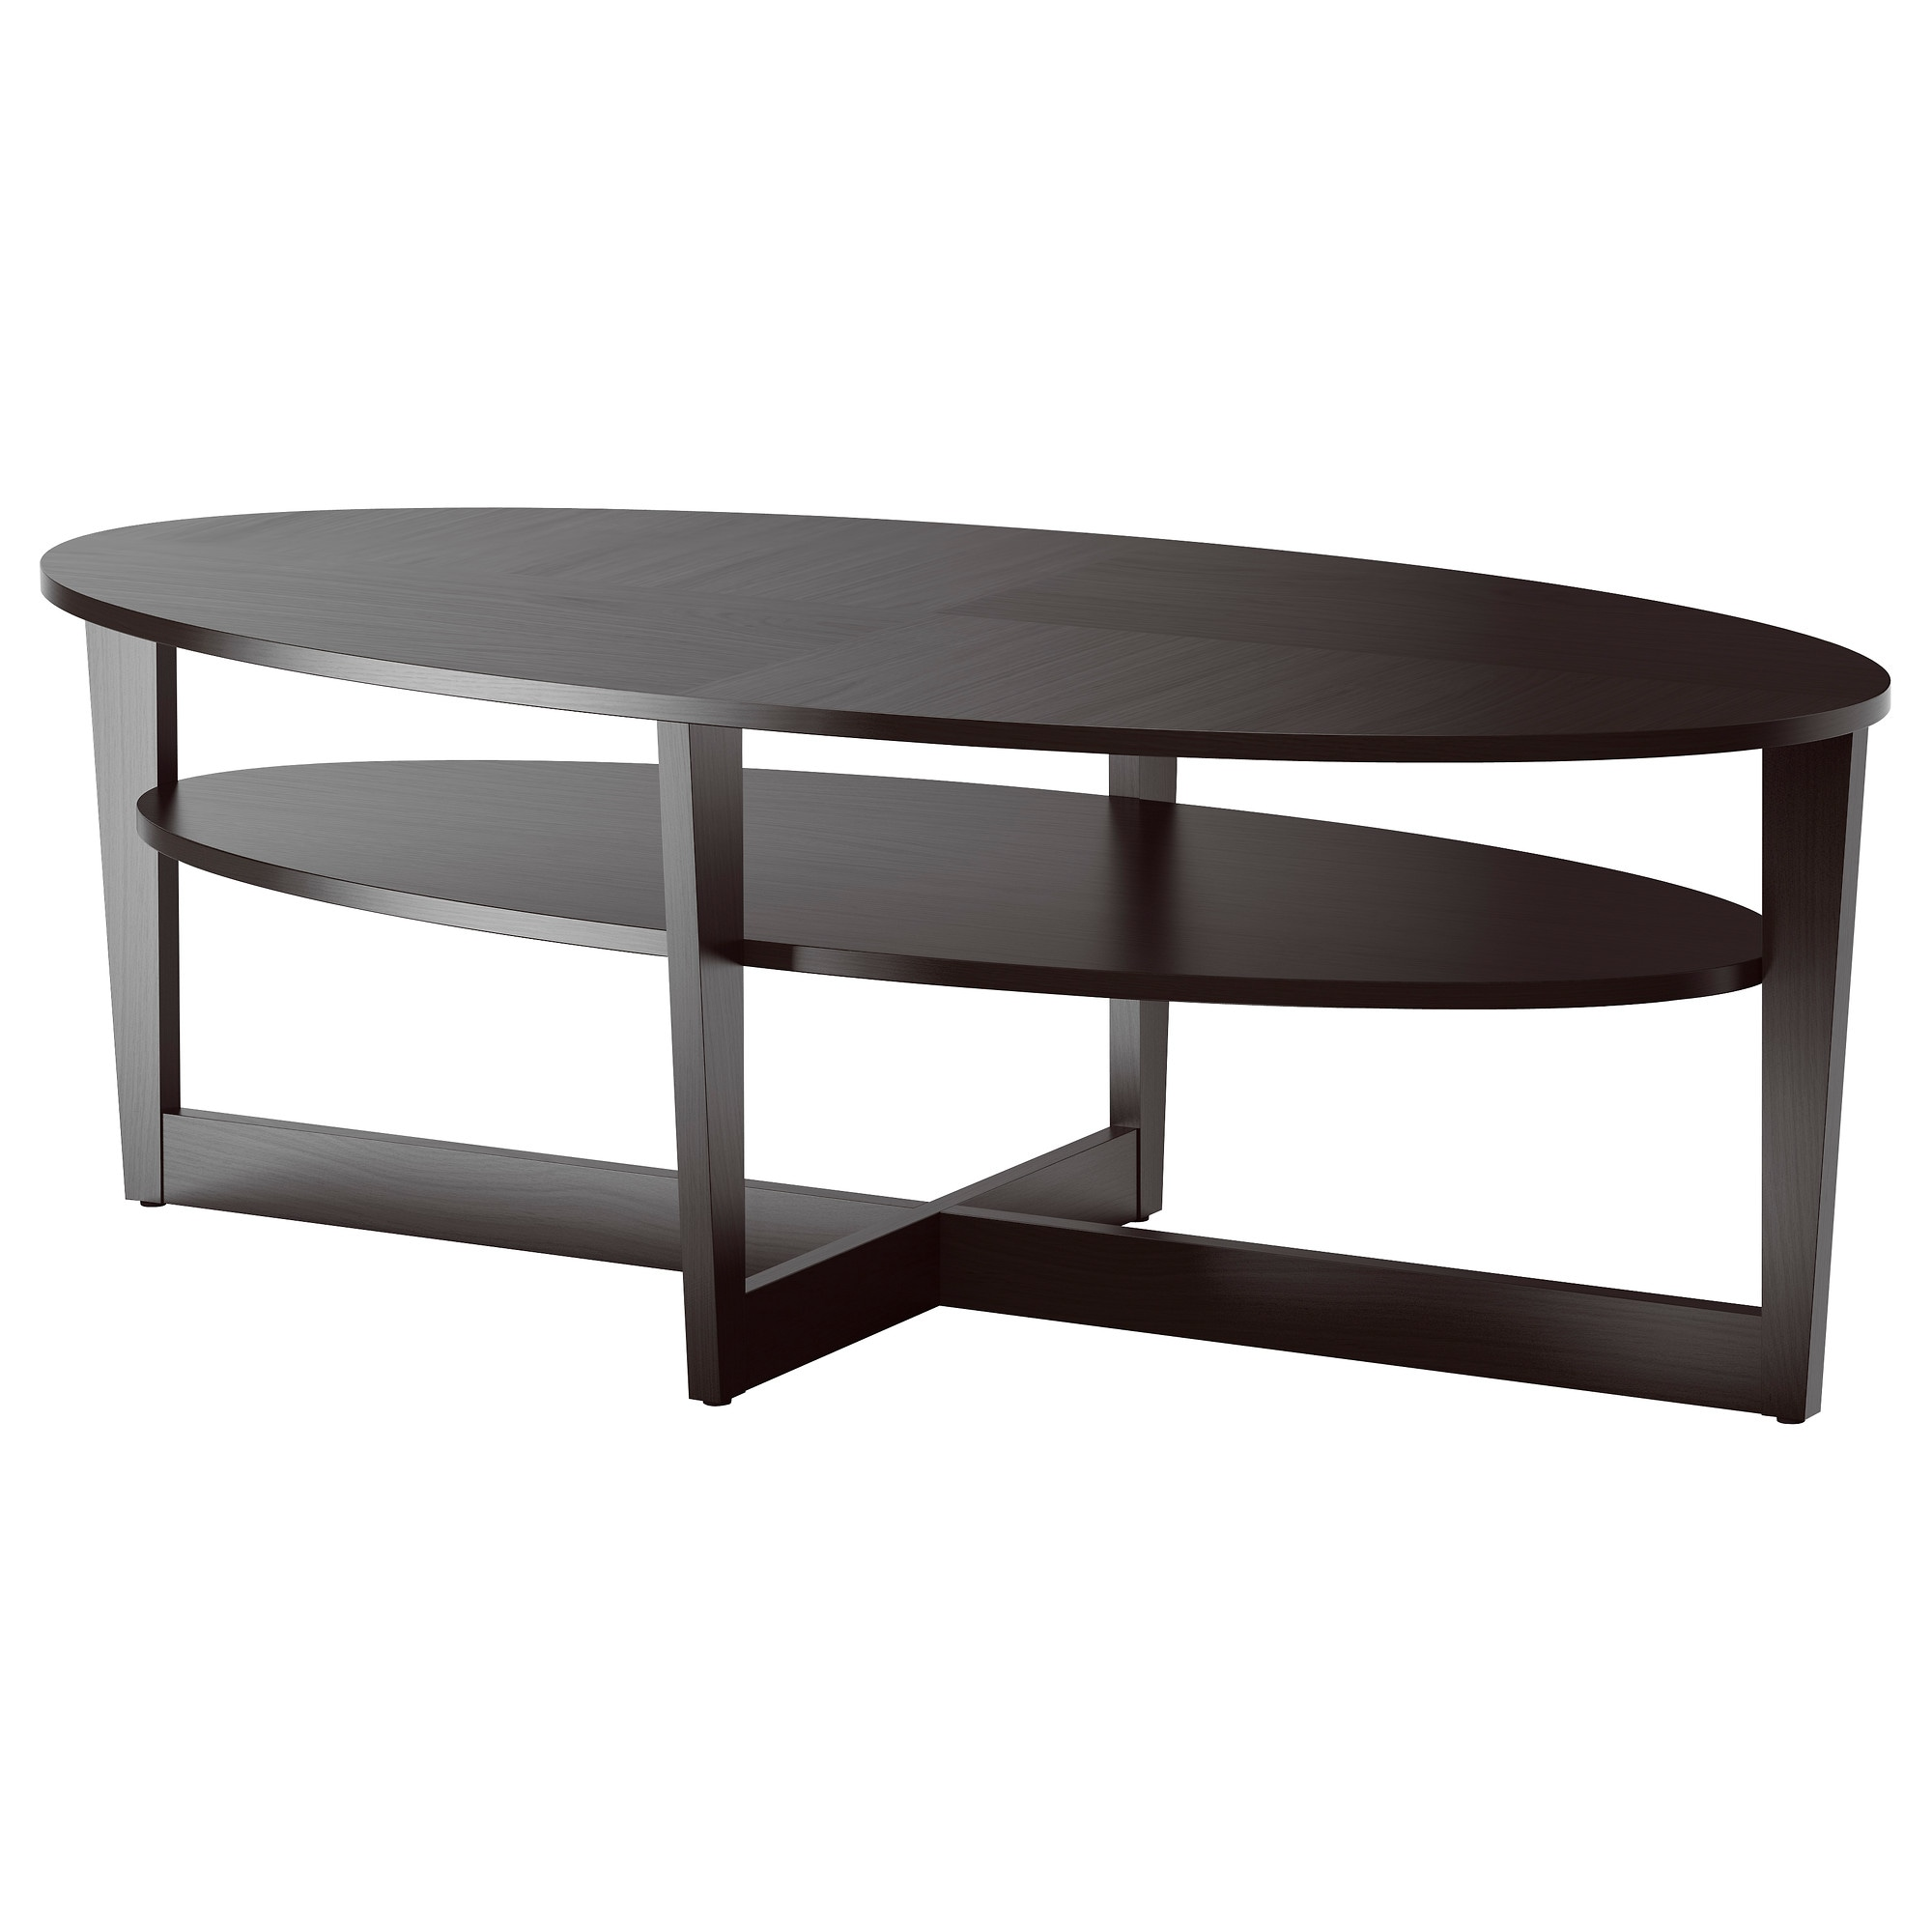 VEJMON Coffee table brown IKEA